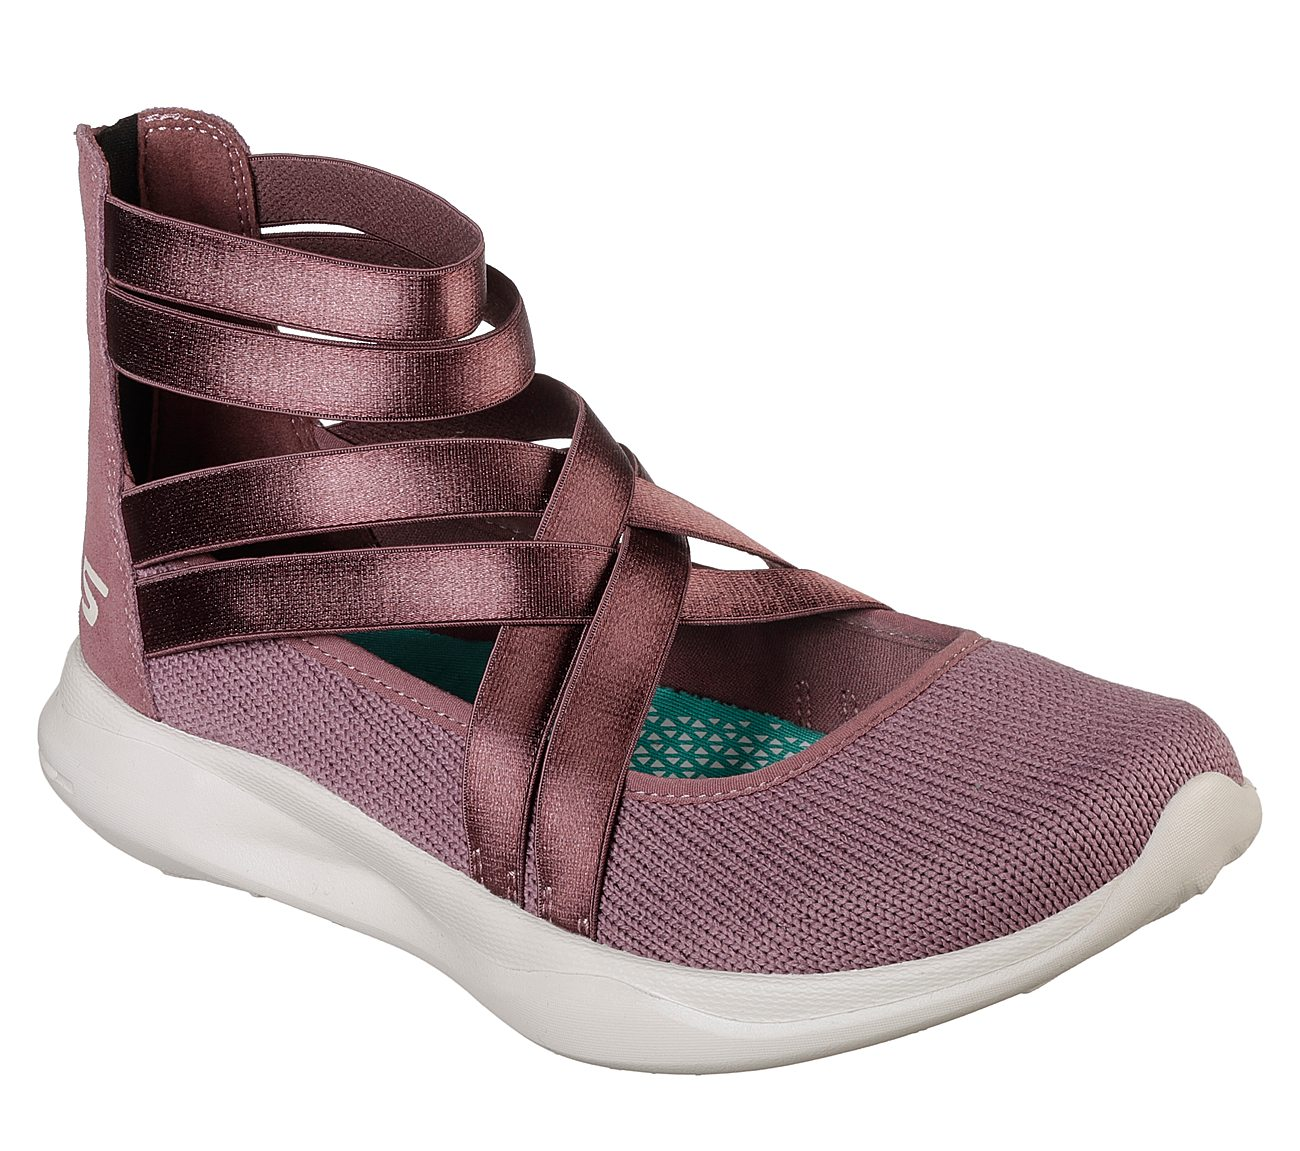 Women's YOU Serene - Dream free shipping for cheap best prices 2014 unisex pay with paypal clearance latest BcMmUmm